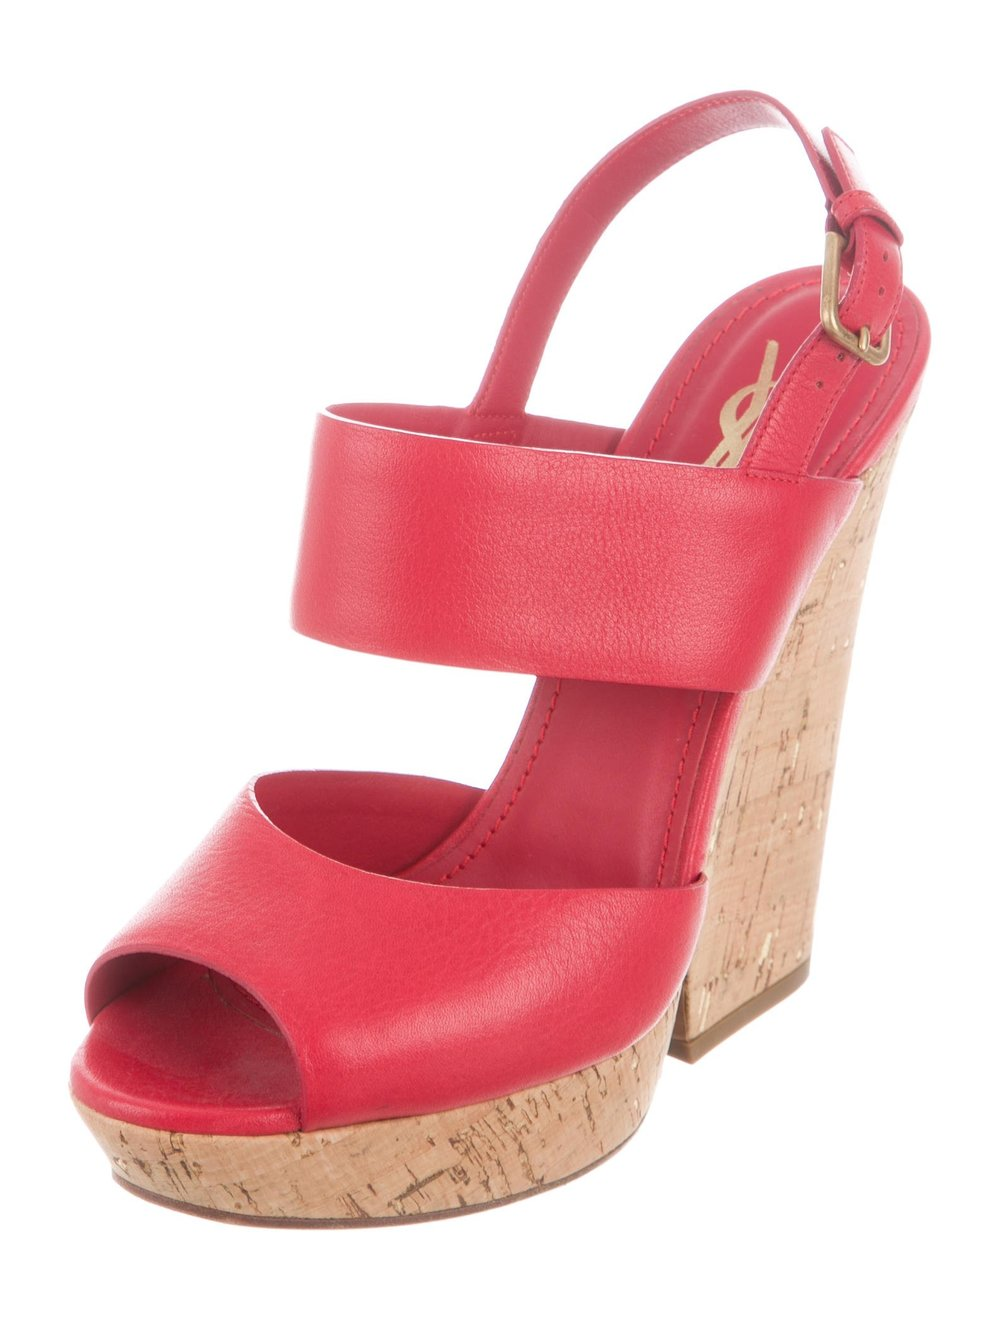 YSL Red Wedges - Purchased for $175Originally $895